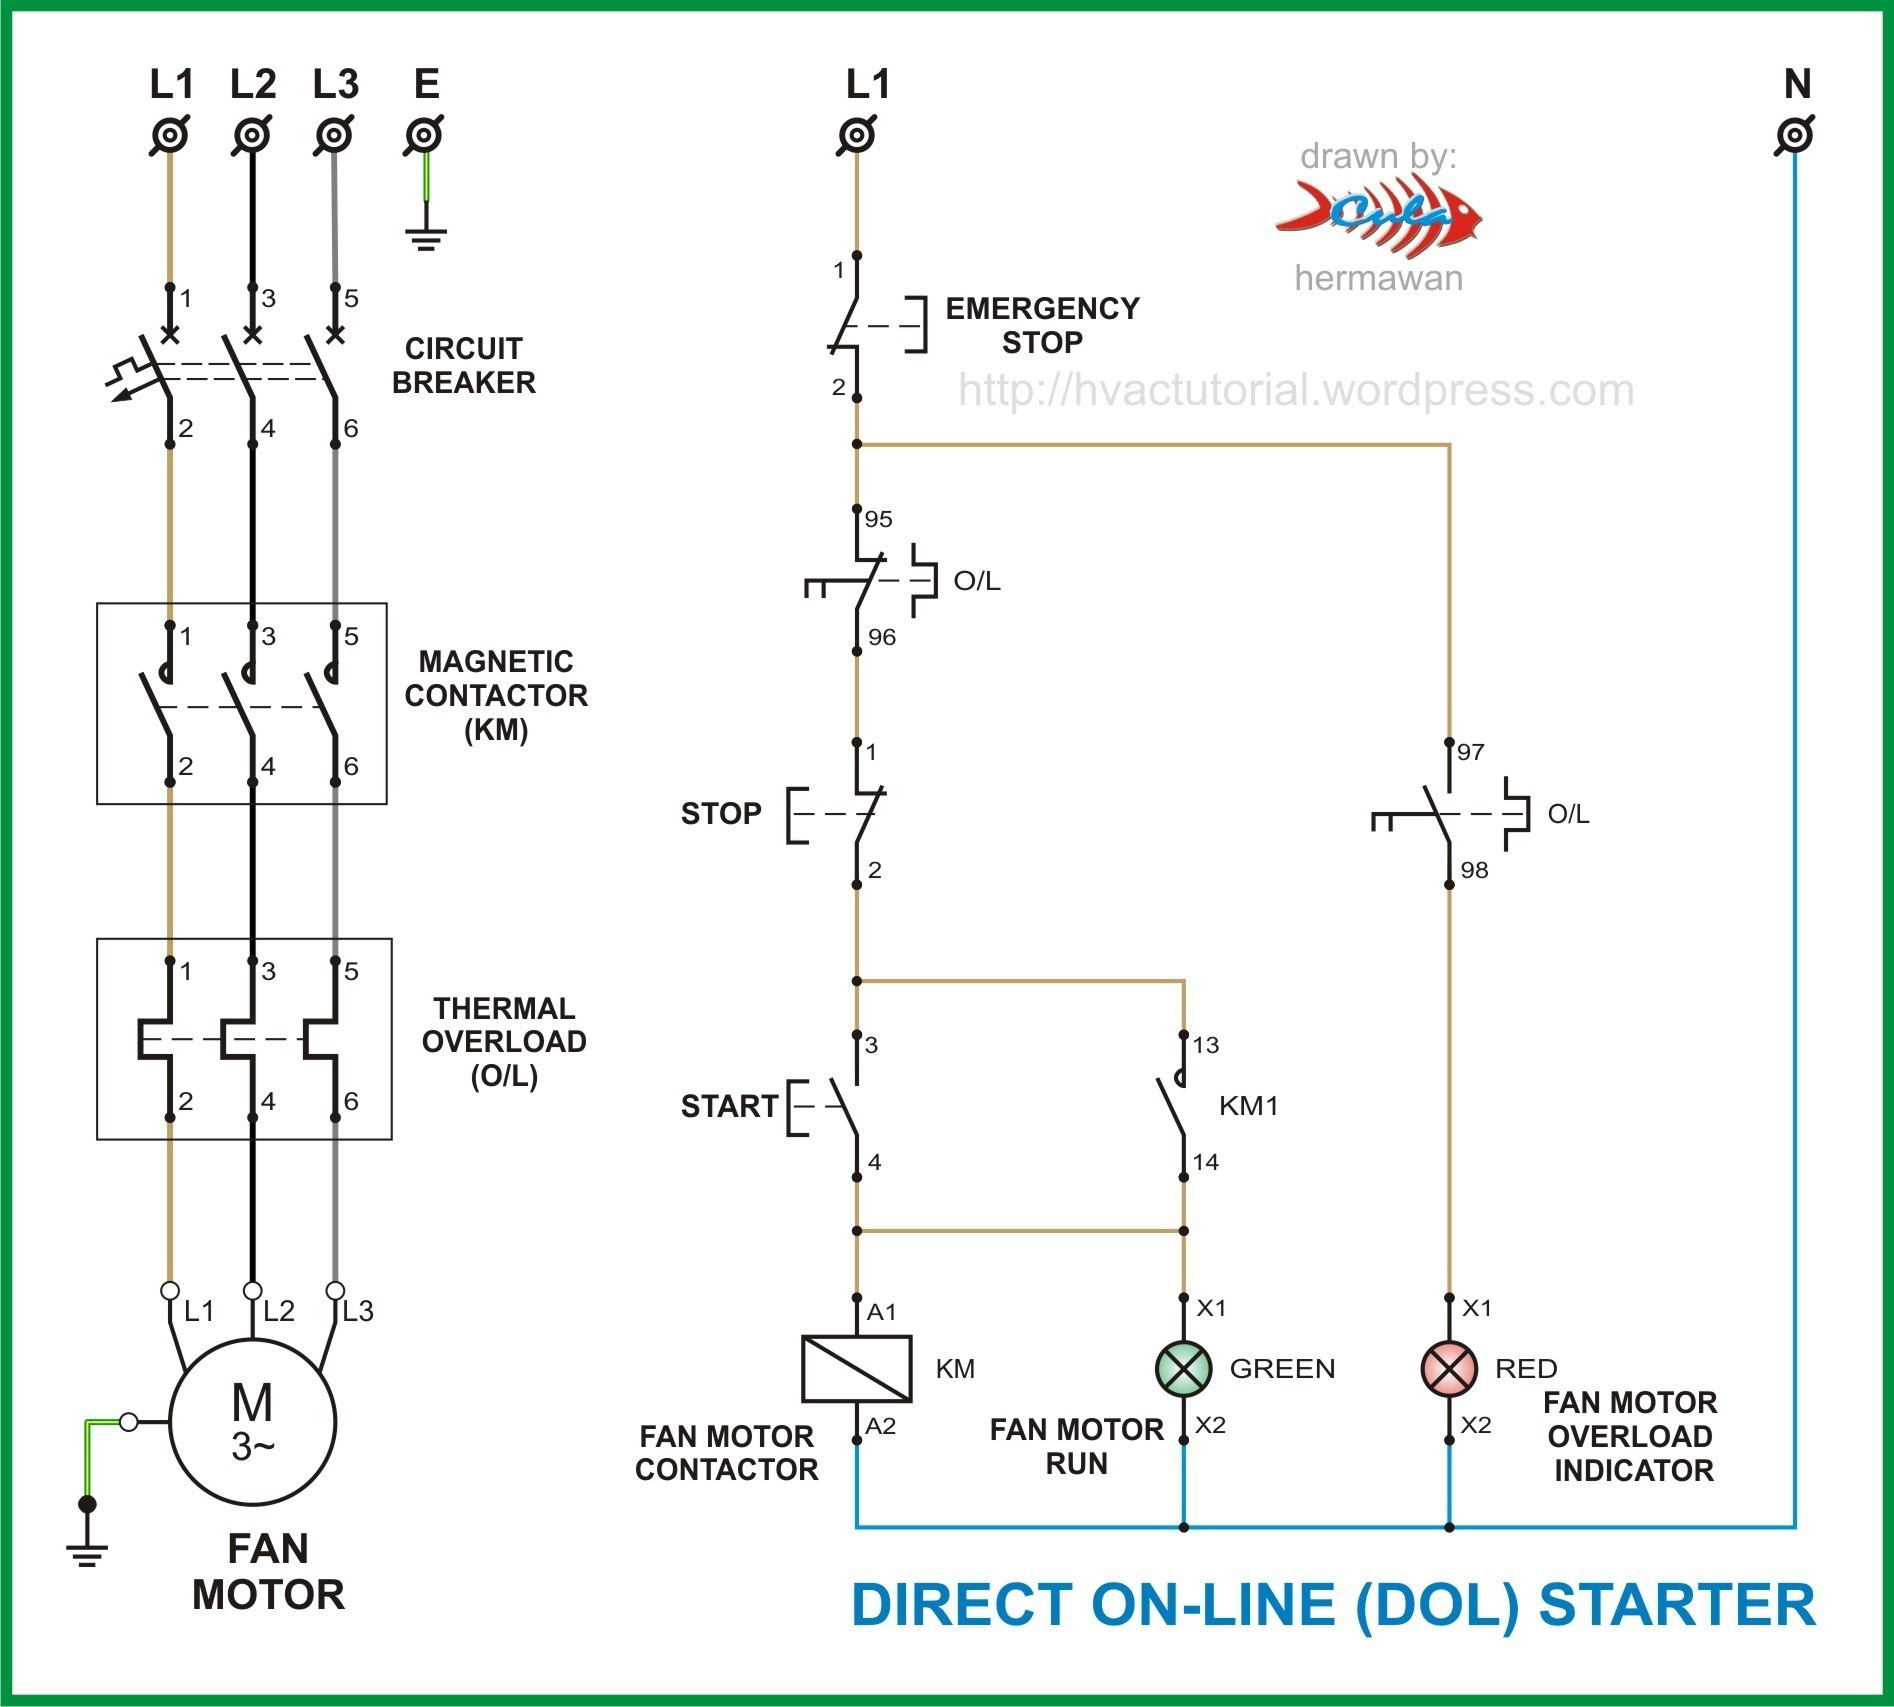 Start Stop Wiring Diagram Pdf | Wiring Diagram on 3 phase motor troubleshooting guide, 3 phase subpanel, 3 phase to single phase wiring diagram, basic electrical schematic diagrams, 3 phase stepper, 3 phase motor schematic, 3 phase outlet wiring diagram, 3 phase motor starter, 3 phase electrical meters, baldor ac motor diagrams, 3 phase motor windings, 3 phase plug, 3 phase motor testing, three-phase transformer banks diagrams, 3 phase single line diagram, 3 phase water heater wiring diagram, 3 phase motor repair, 3 phase squirrel cage induction motor, 3 phase to 1 phase wiring diagram, 3 phase motor speed controller,